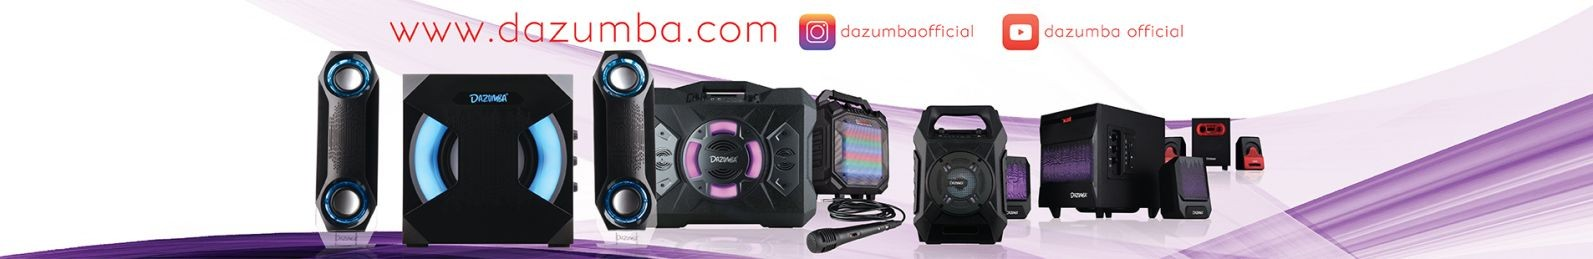 Dazumba Official Store